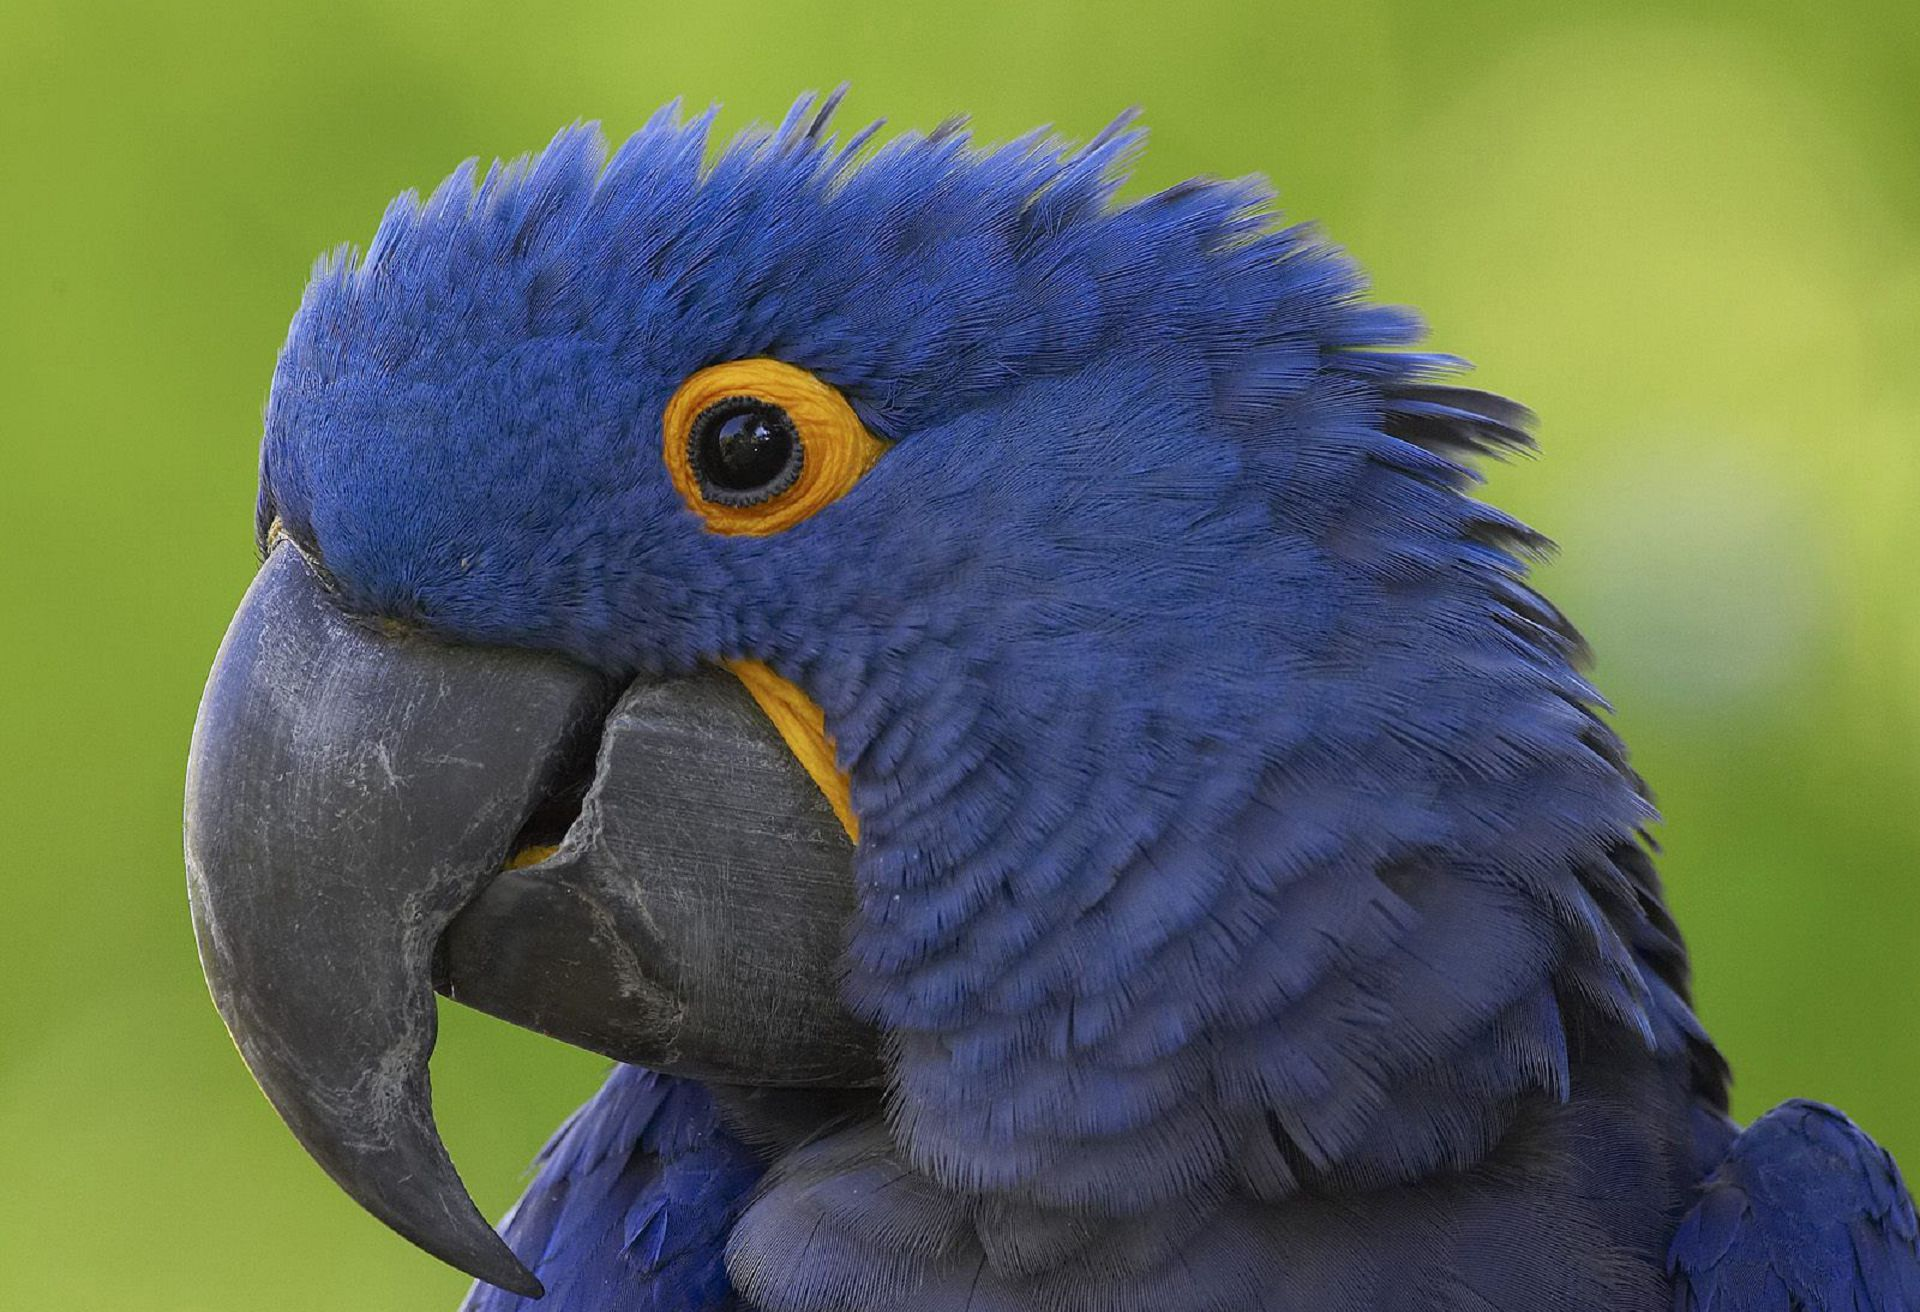 Blue Parrot High Quality Wallpapers